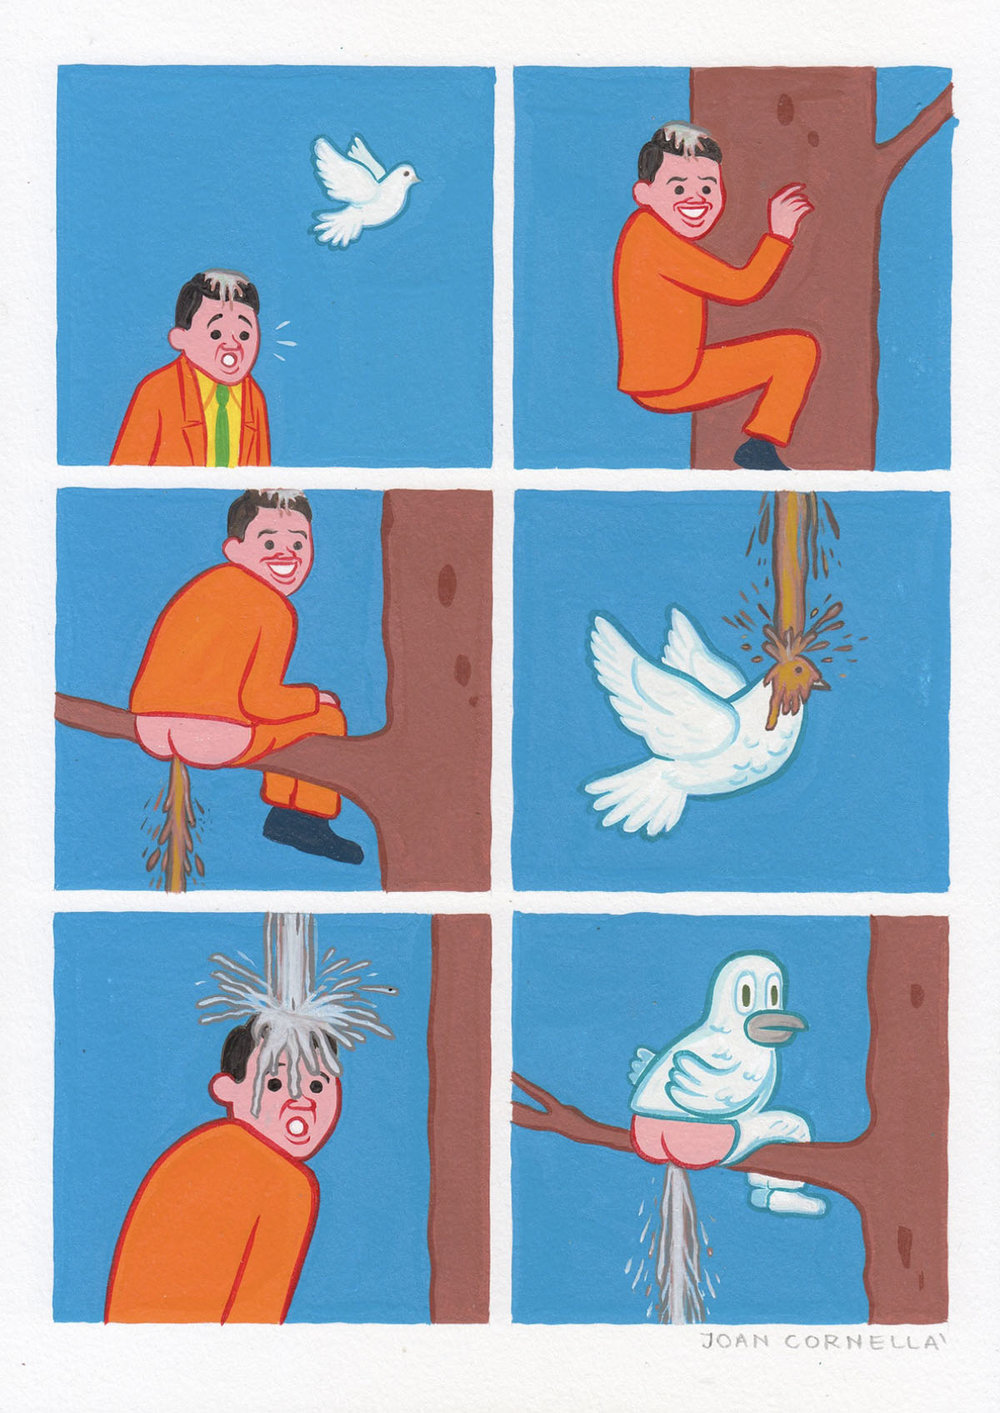 joan_cornella_exhibition_02.jpg